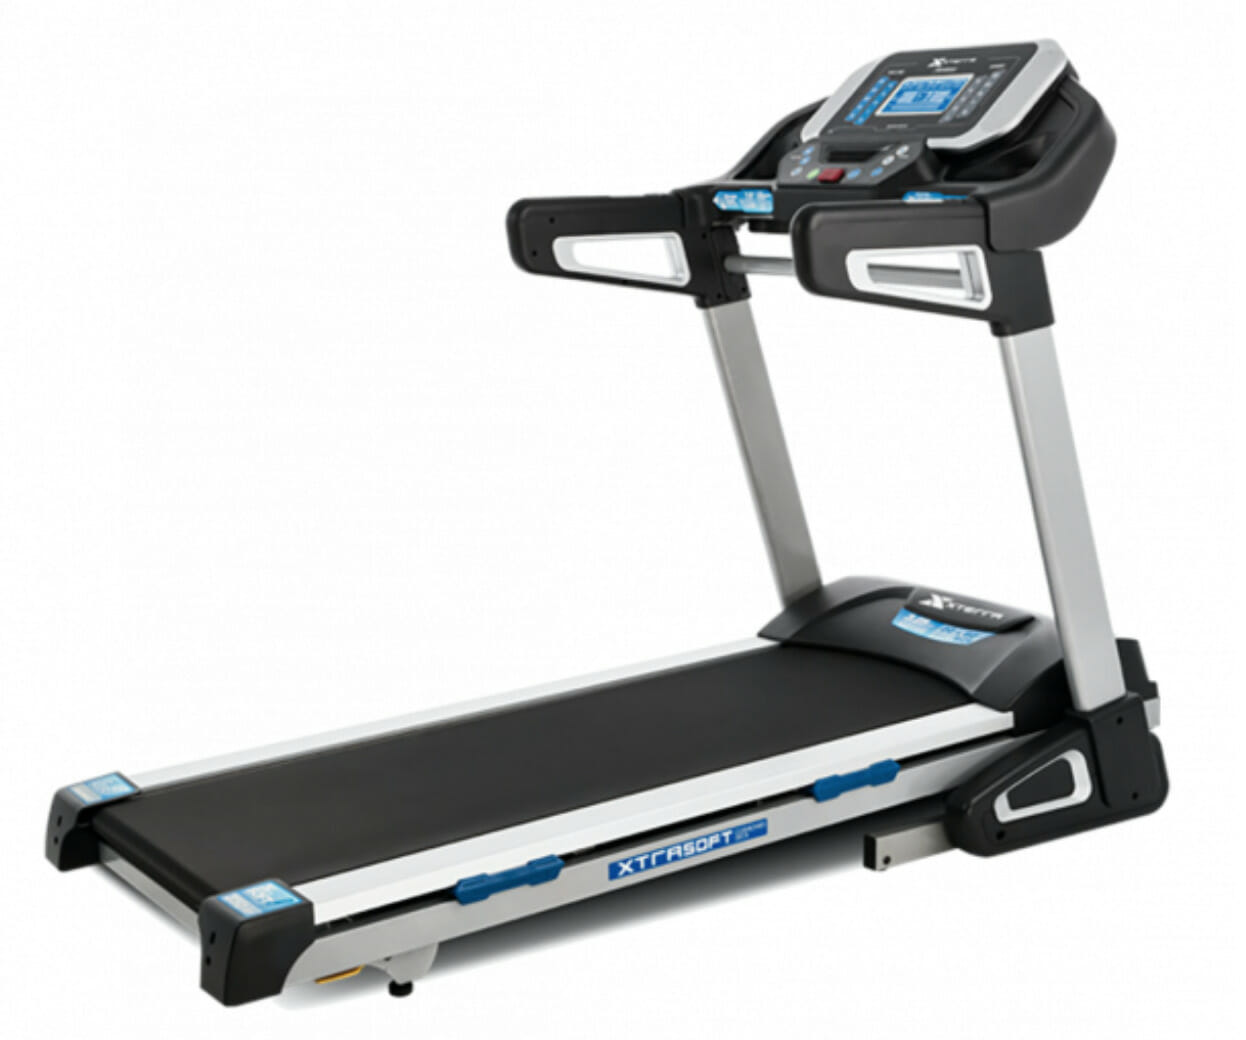 xterra trx4500 treadmill review